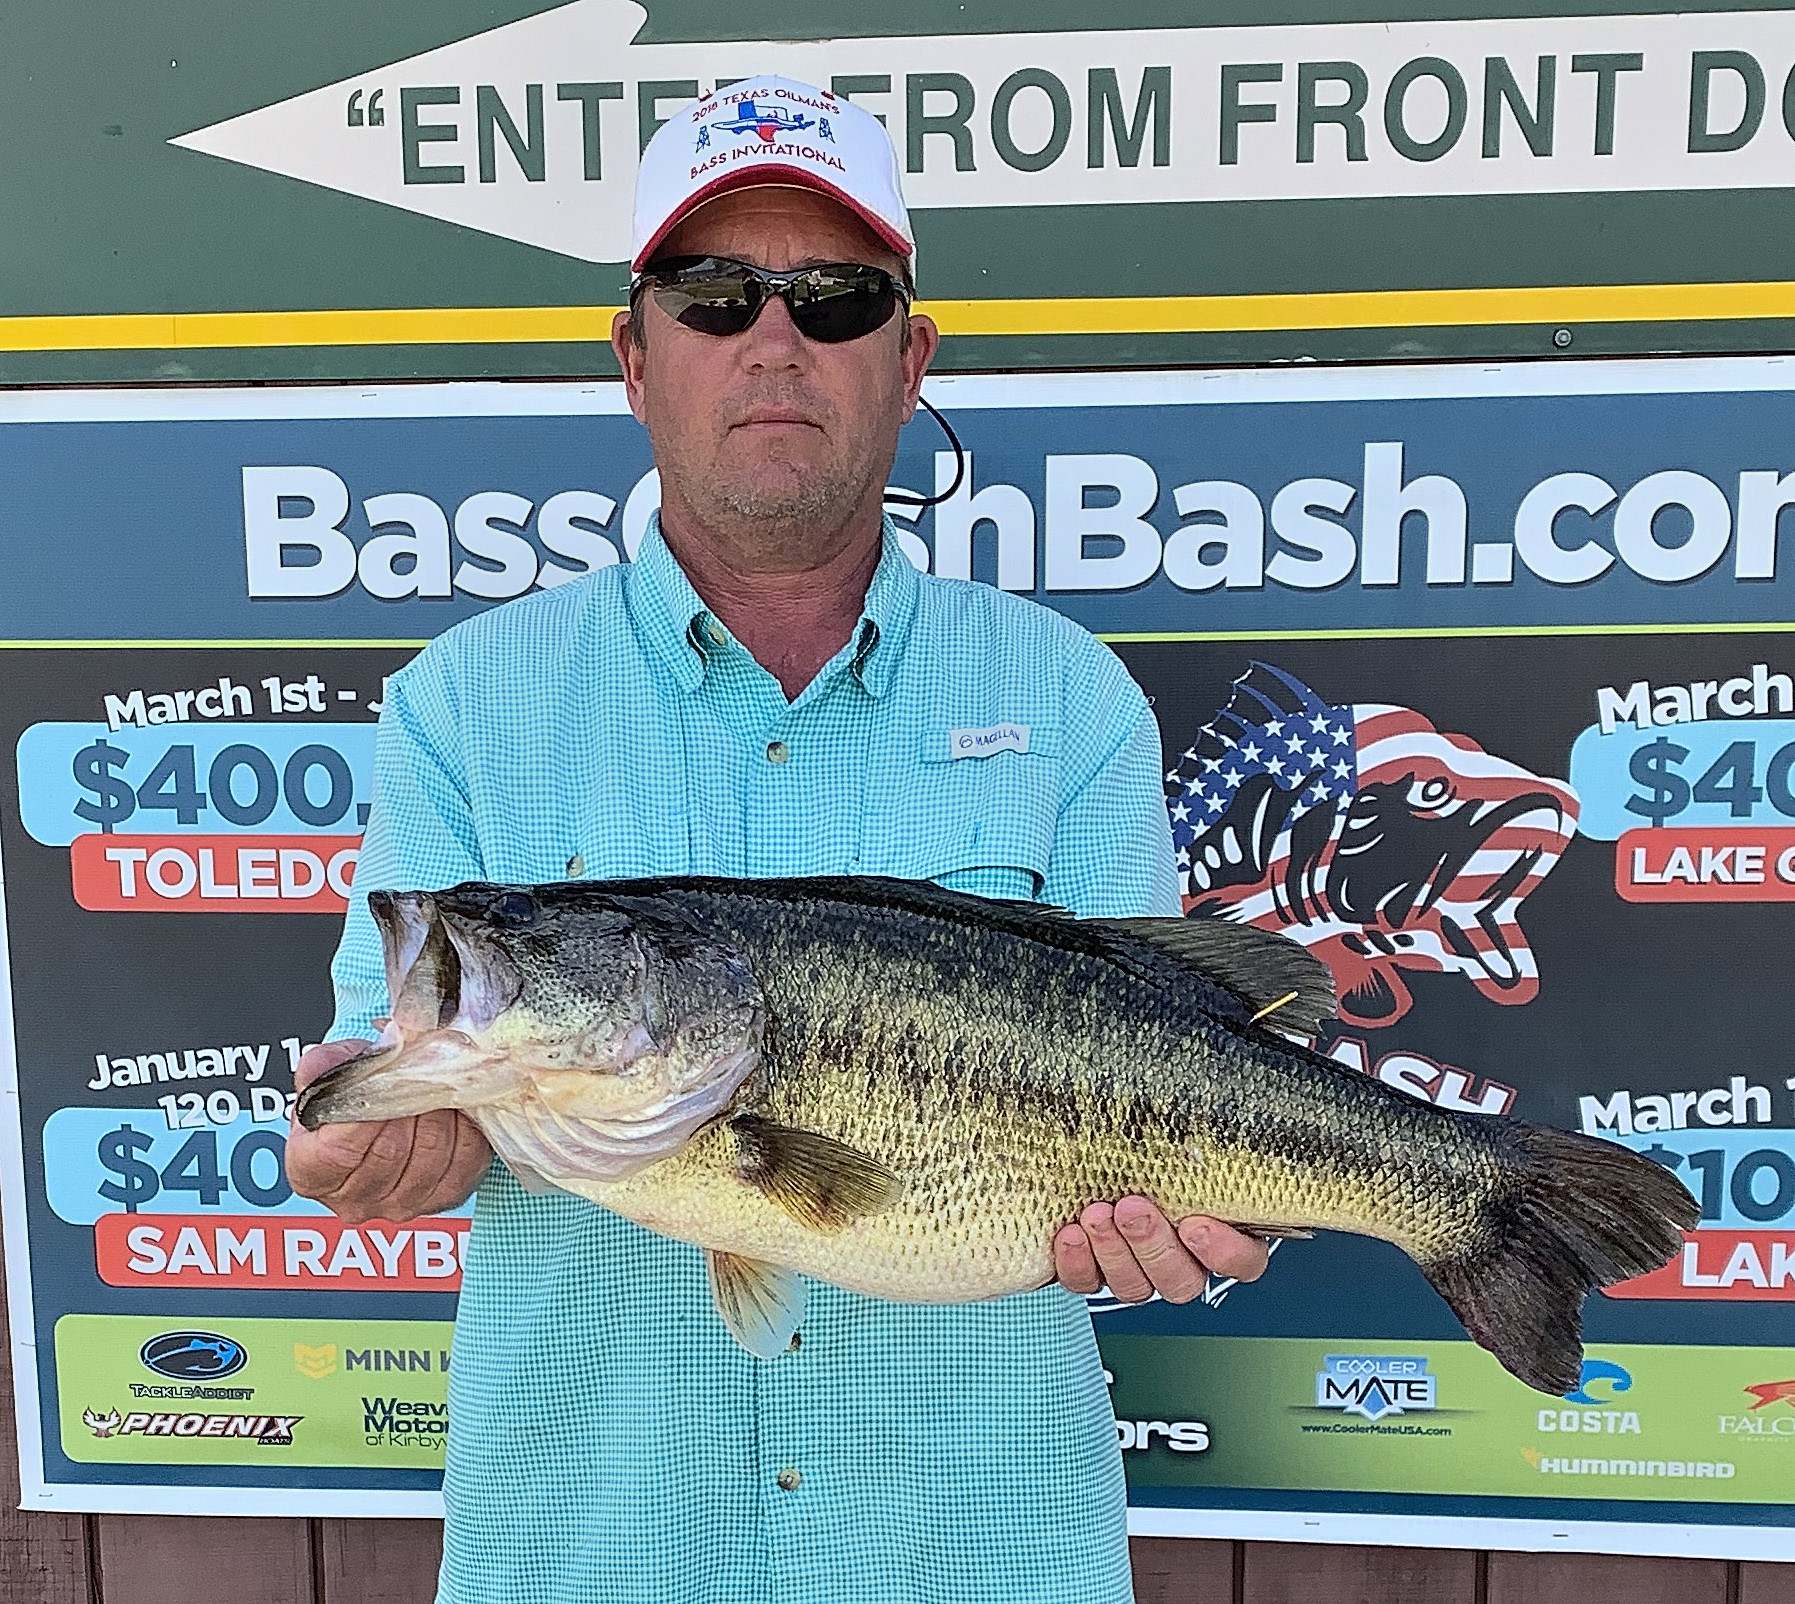 Ray Kovacs of St. Martinville was working a white Phenix chatterbait to take this huge bass weighing 10.50 pounds. (Photo courtesy of Toledo Bend Lake Association)